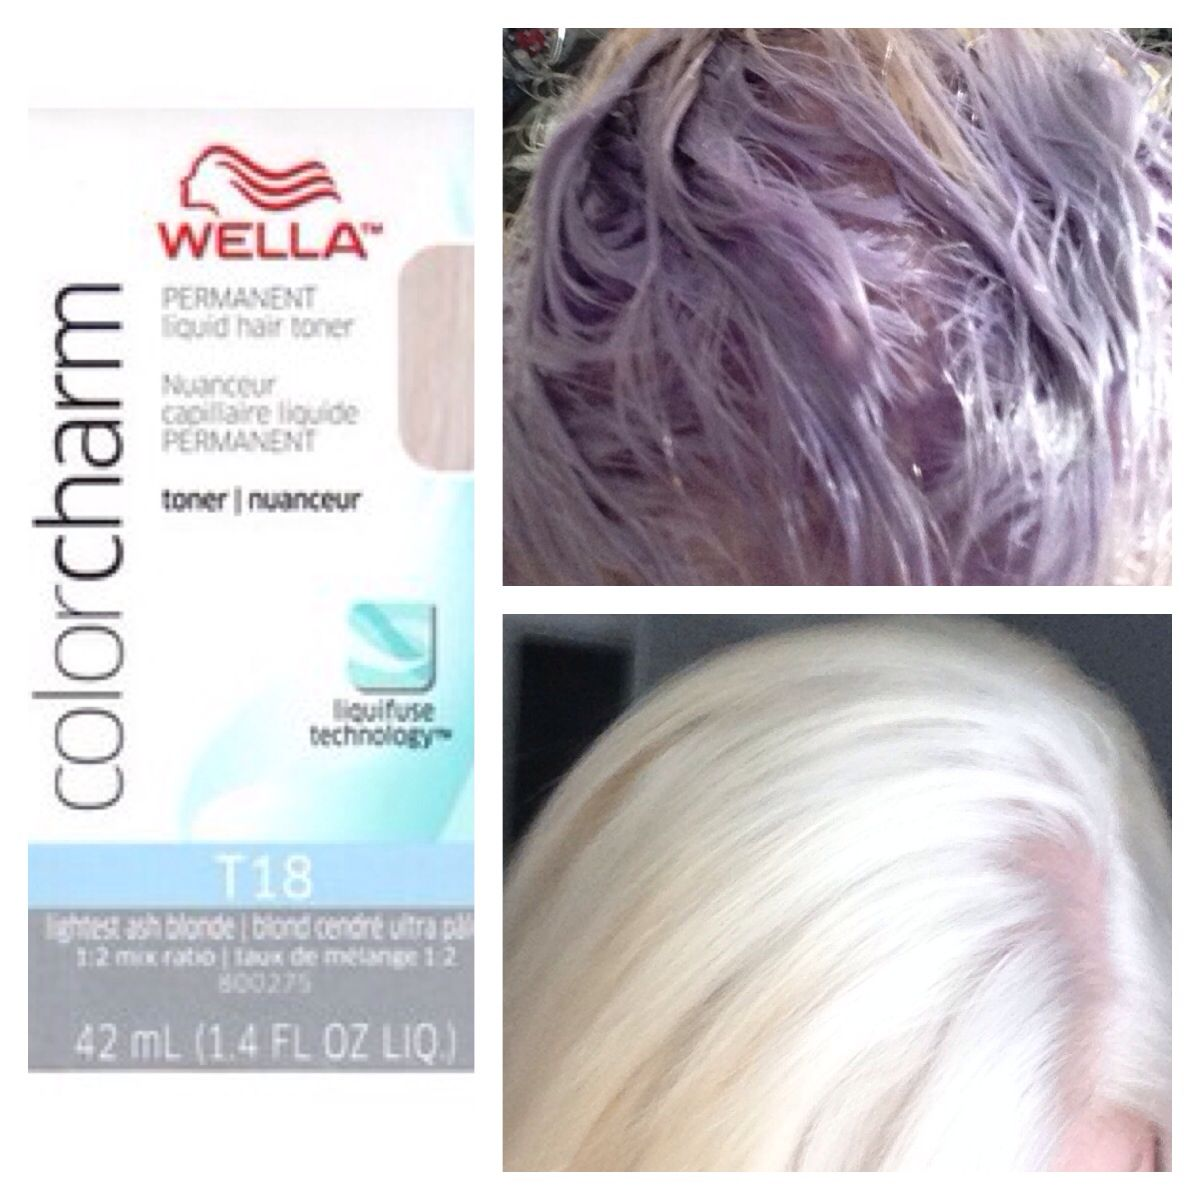 Wella t 18 for the woman who wants absolutely frosty white pastel wella t 18 for the woman who wants absolutely frosty white pastel nvjuhfo Gallery